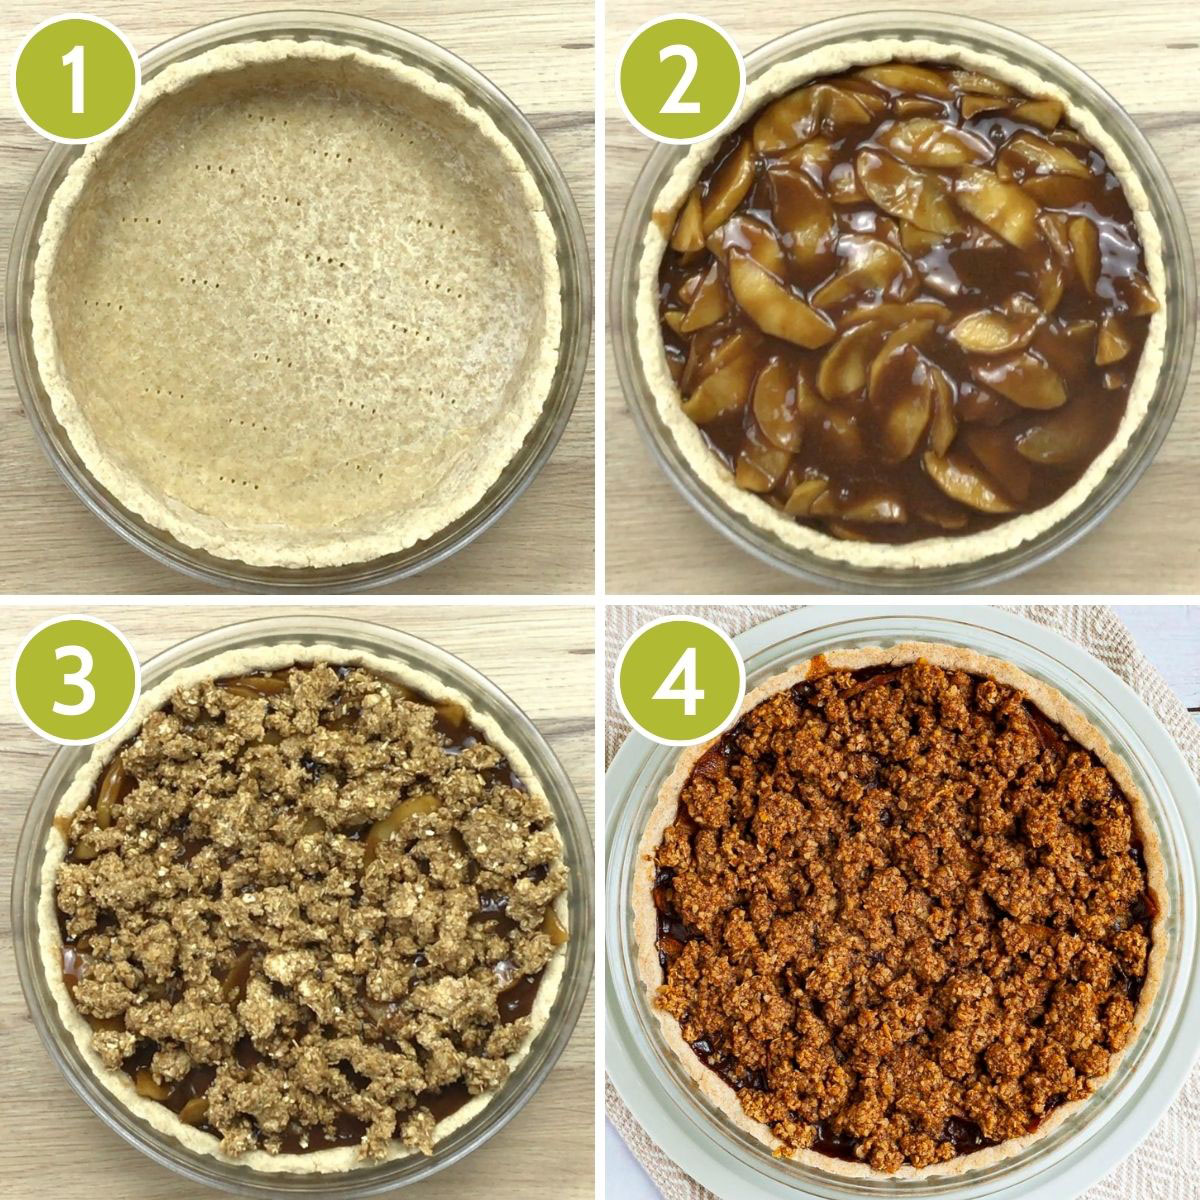 4 photo collage of how to assemble an apple crisp pie showing first the yellow pie crust, then the apple slices in brown sauce, then the crispy topping